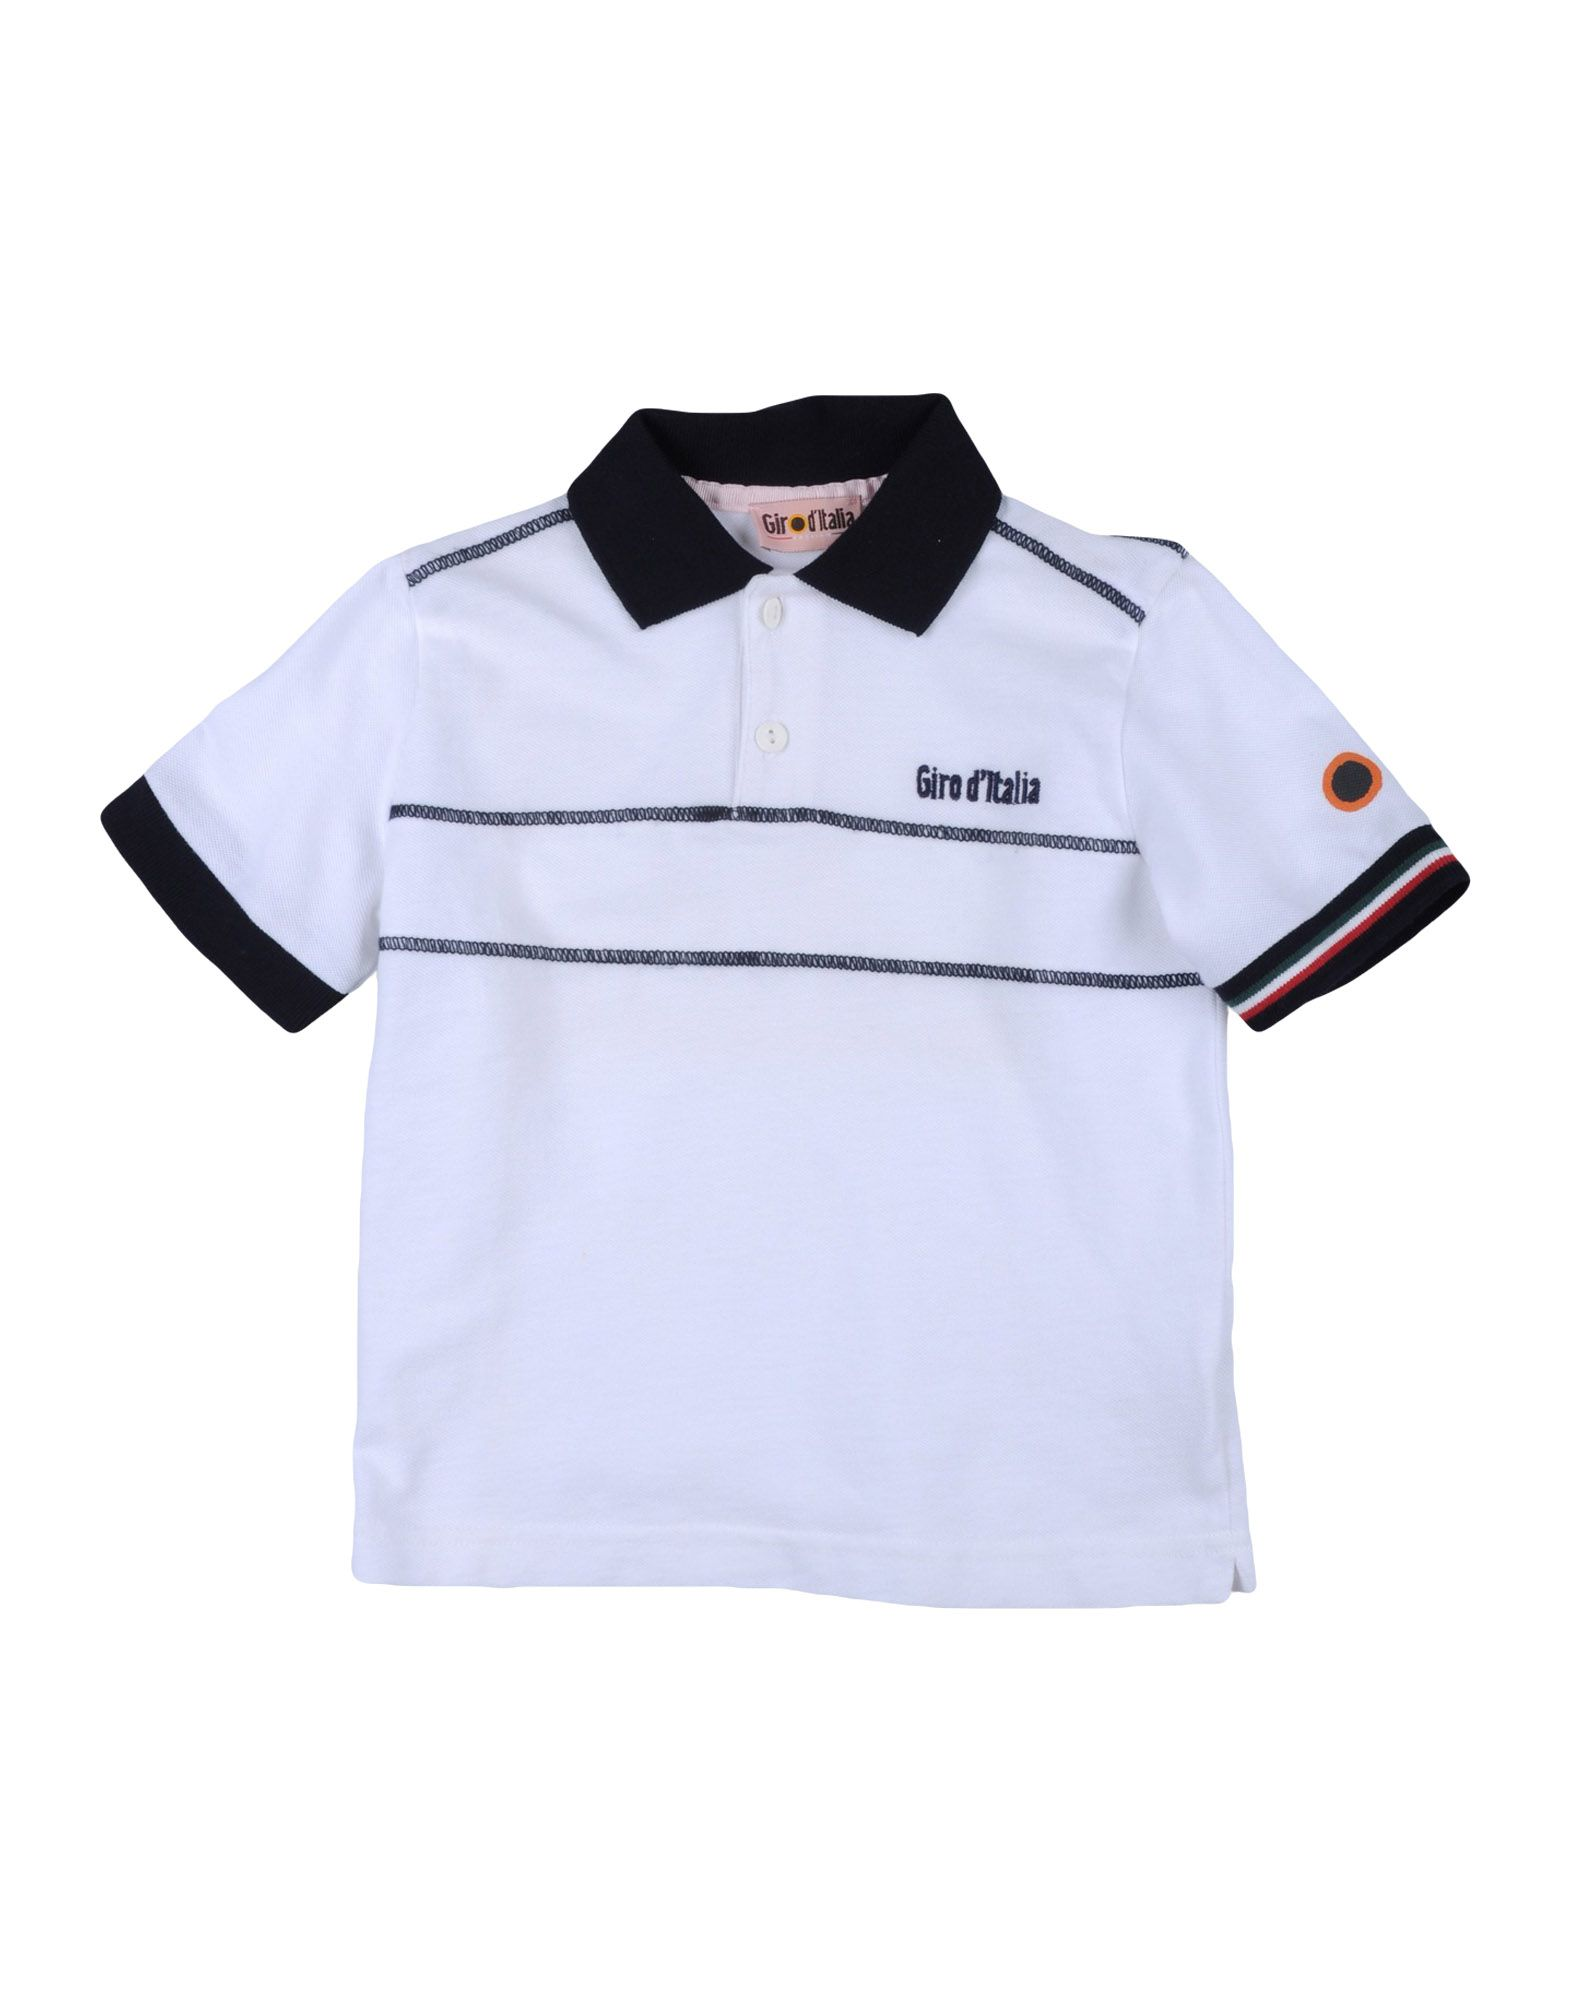 GIRO DITALIA FASHION Polo shirts